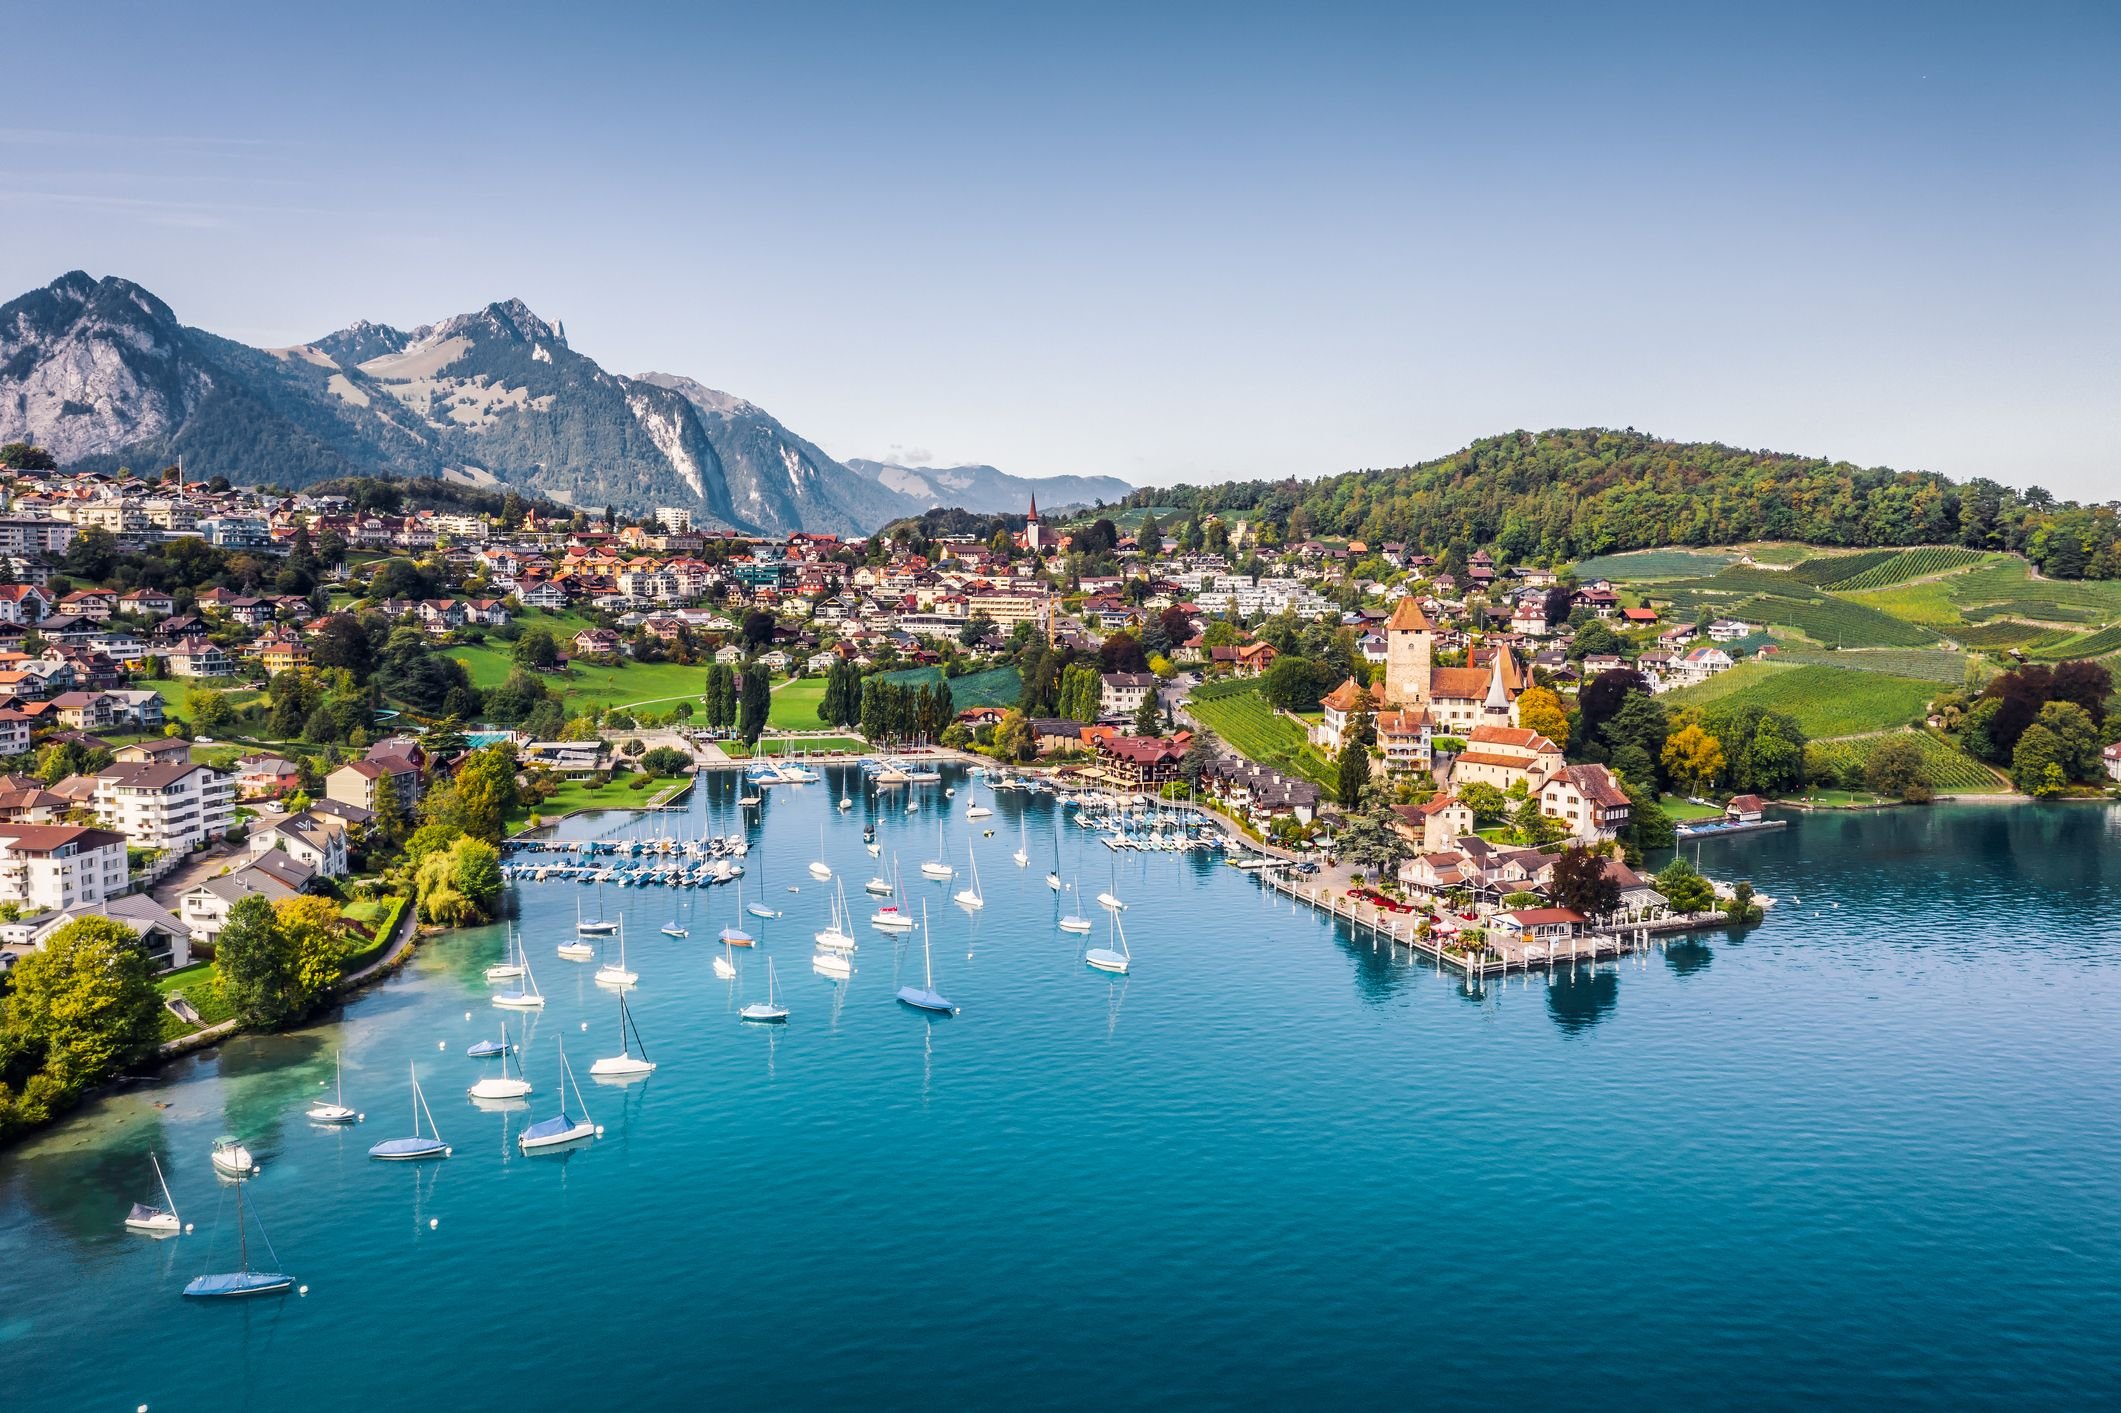 The most popular European honeymoon destination is probably not where you'd expect